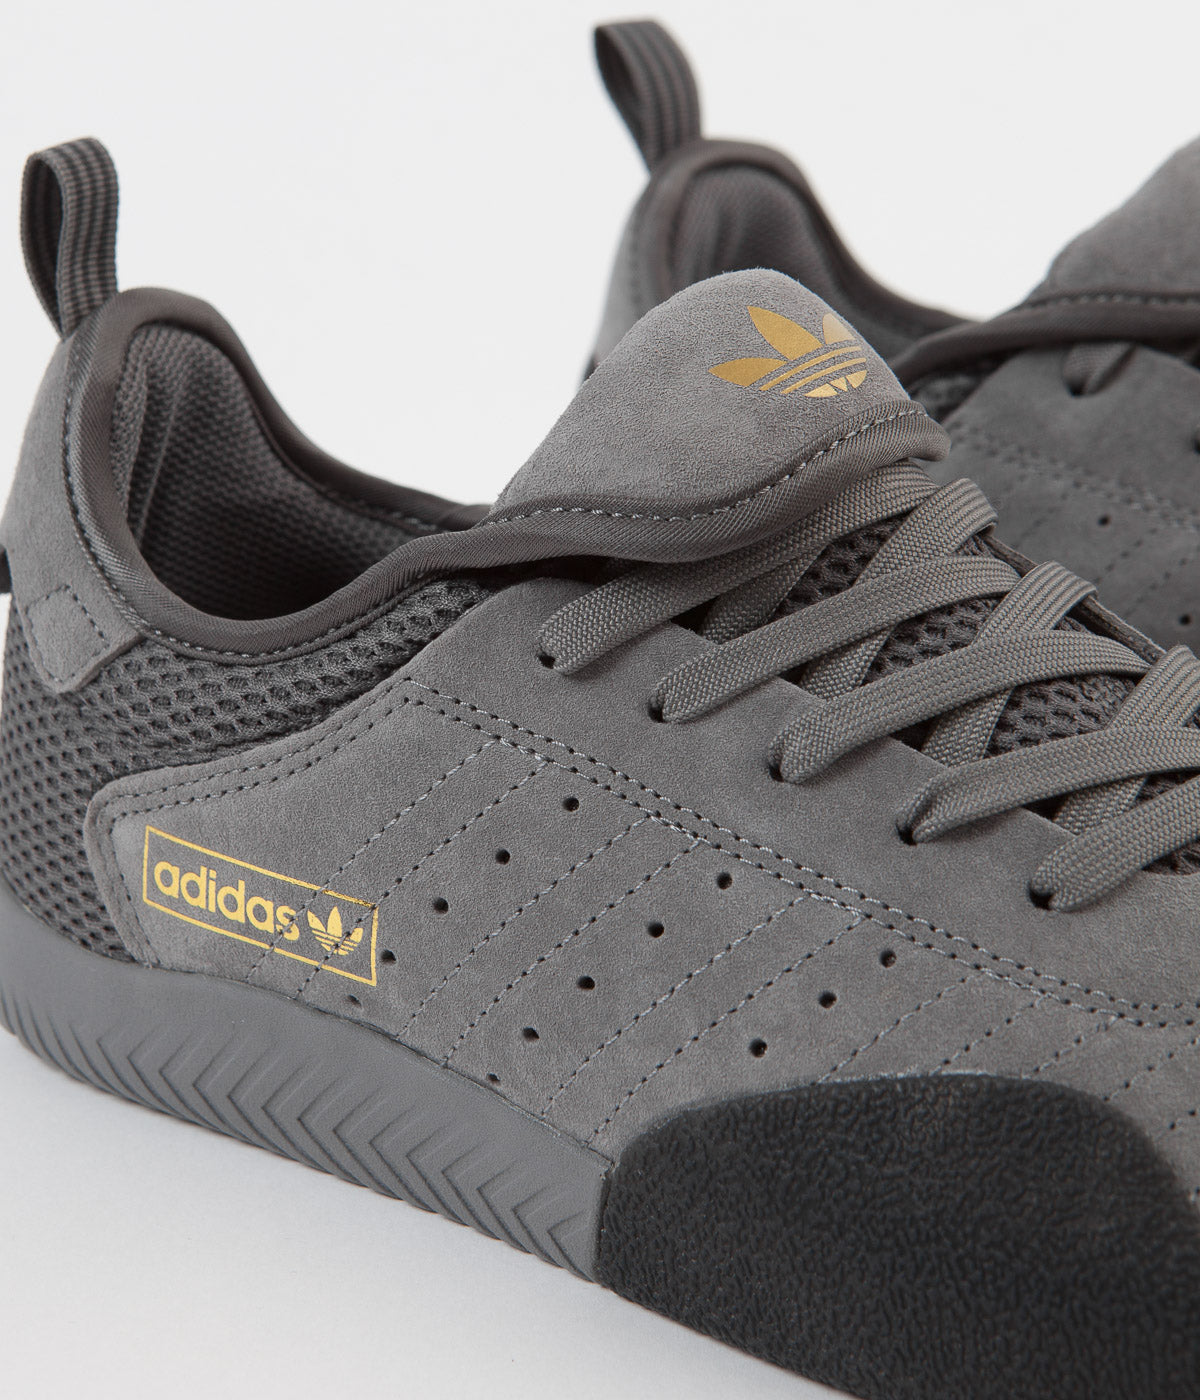 Adidas 3ST.003 Shoes - Grey Four / Carbon / Gold Metallic